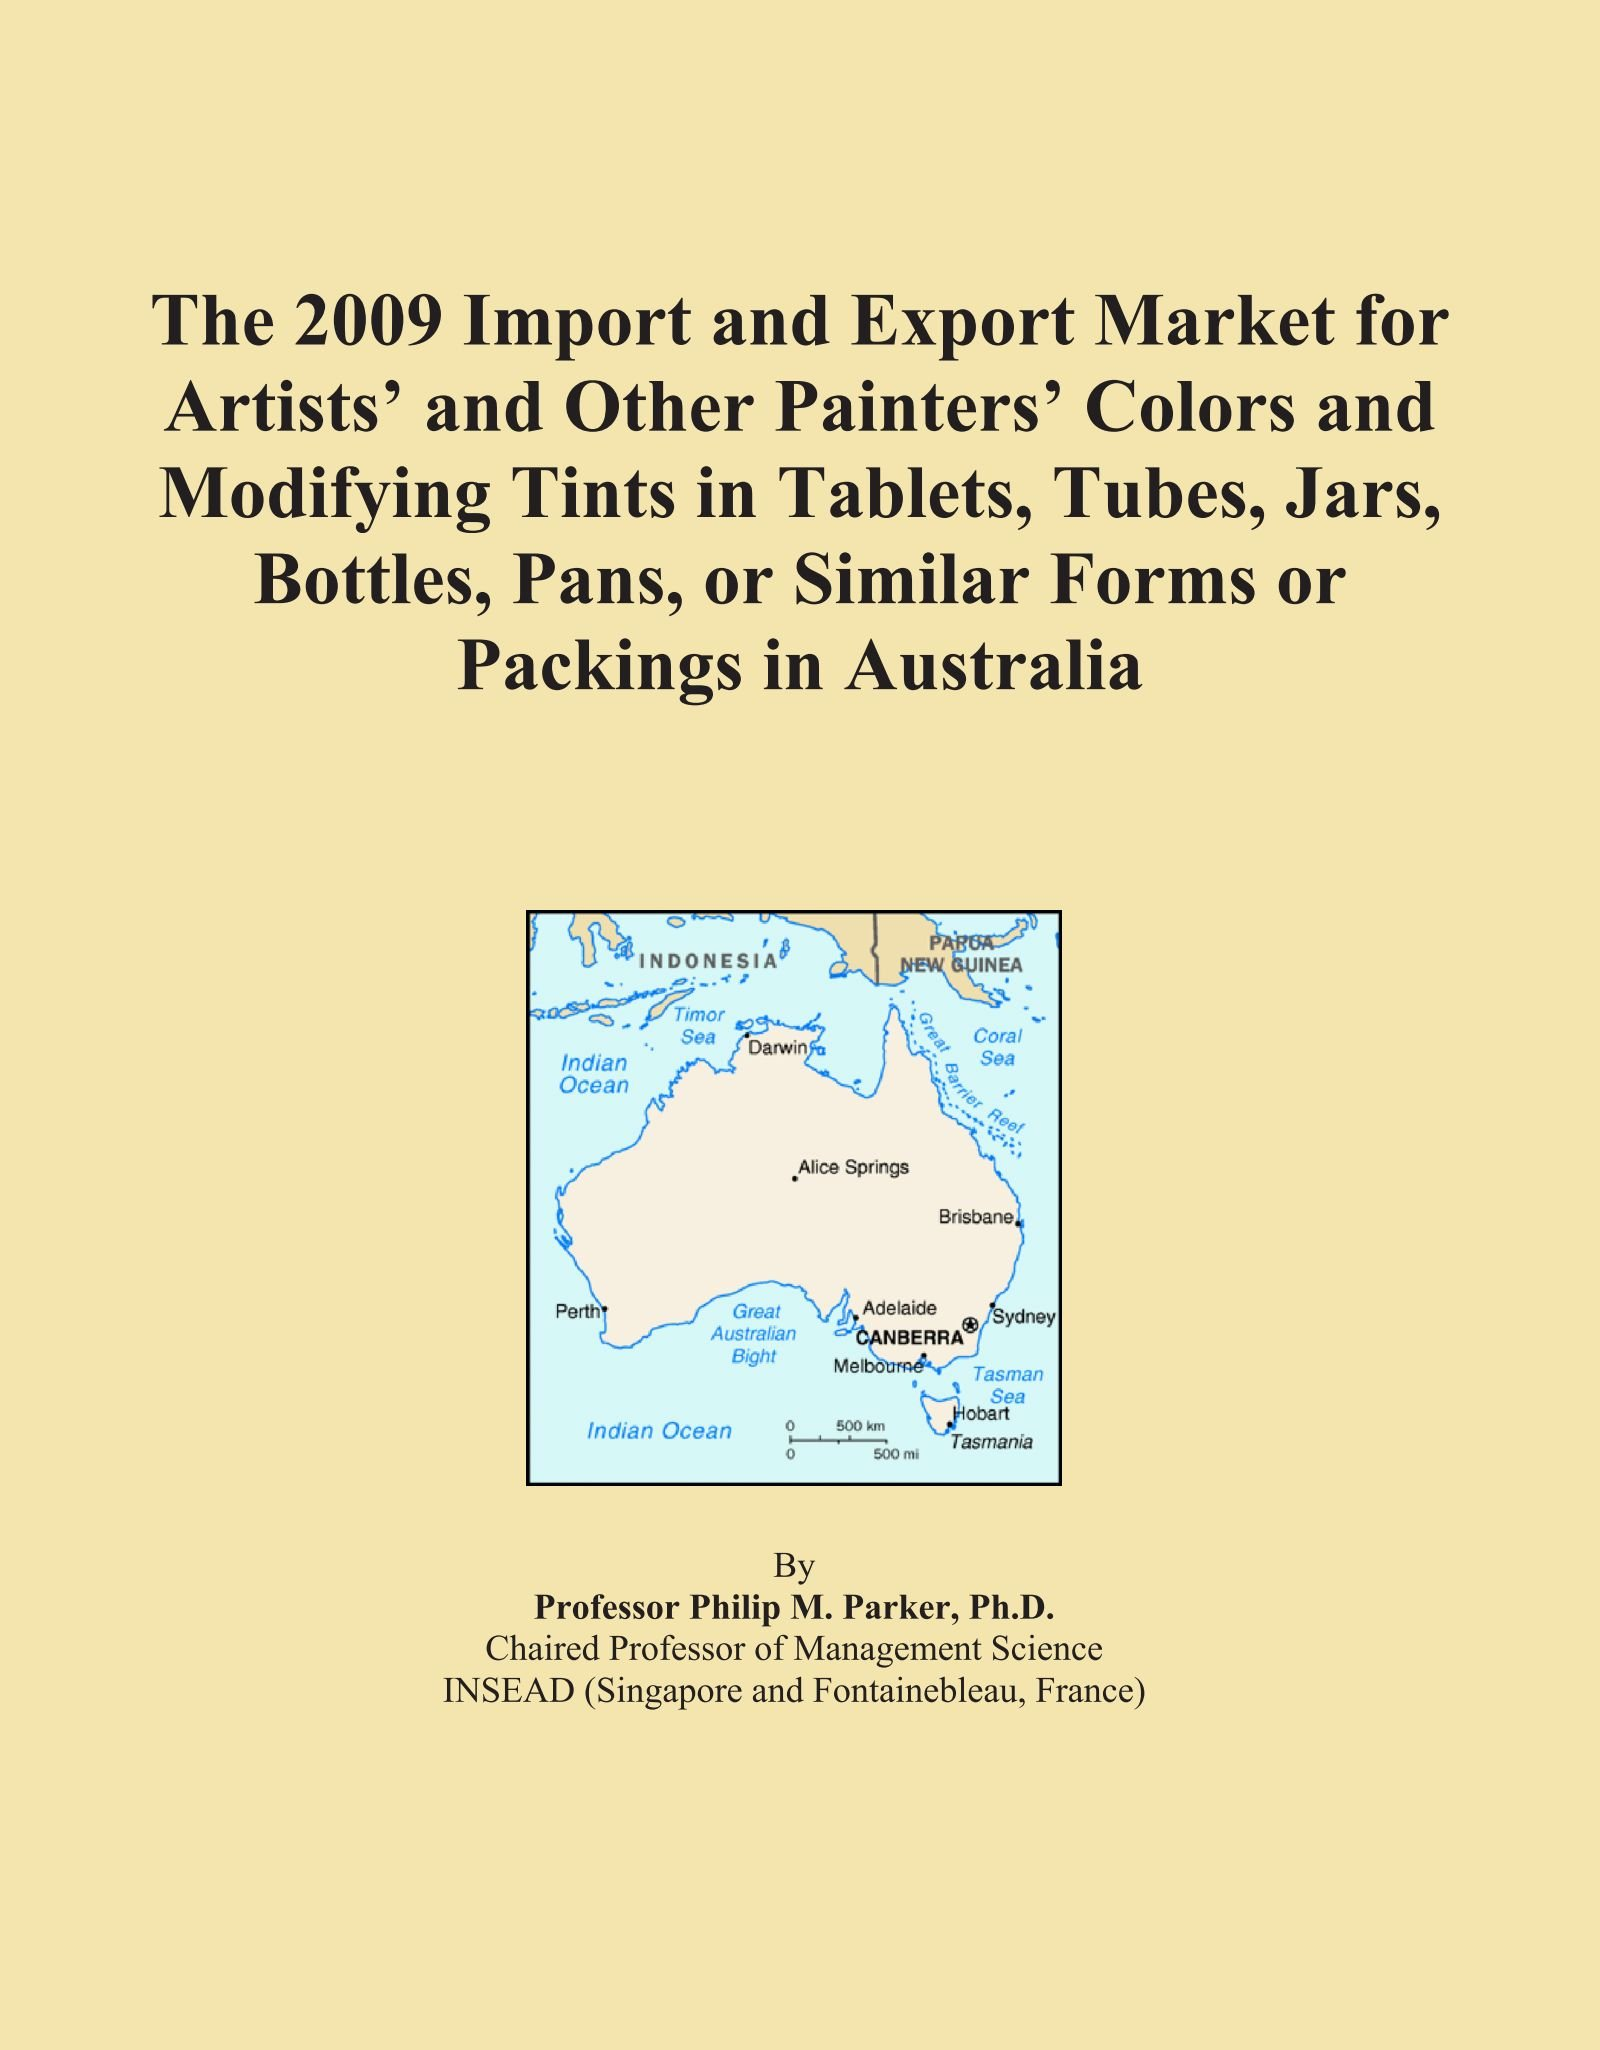 Download The 2009 Import and Export Market for Artists' and Other Painters' Colors and Modifying Tints in Tablets, Tubes, Jars, Bottles, Pans, or Similar Forms or Packings in Australia pdf